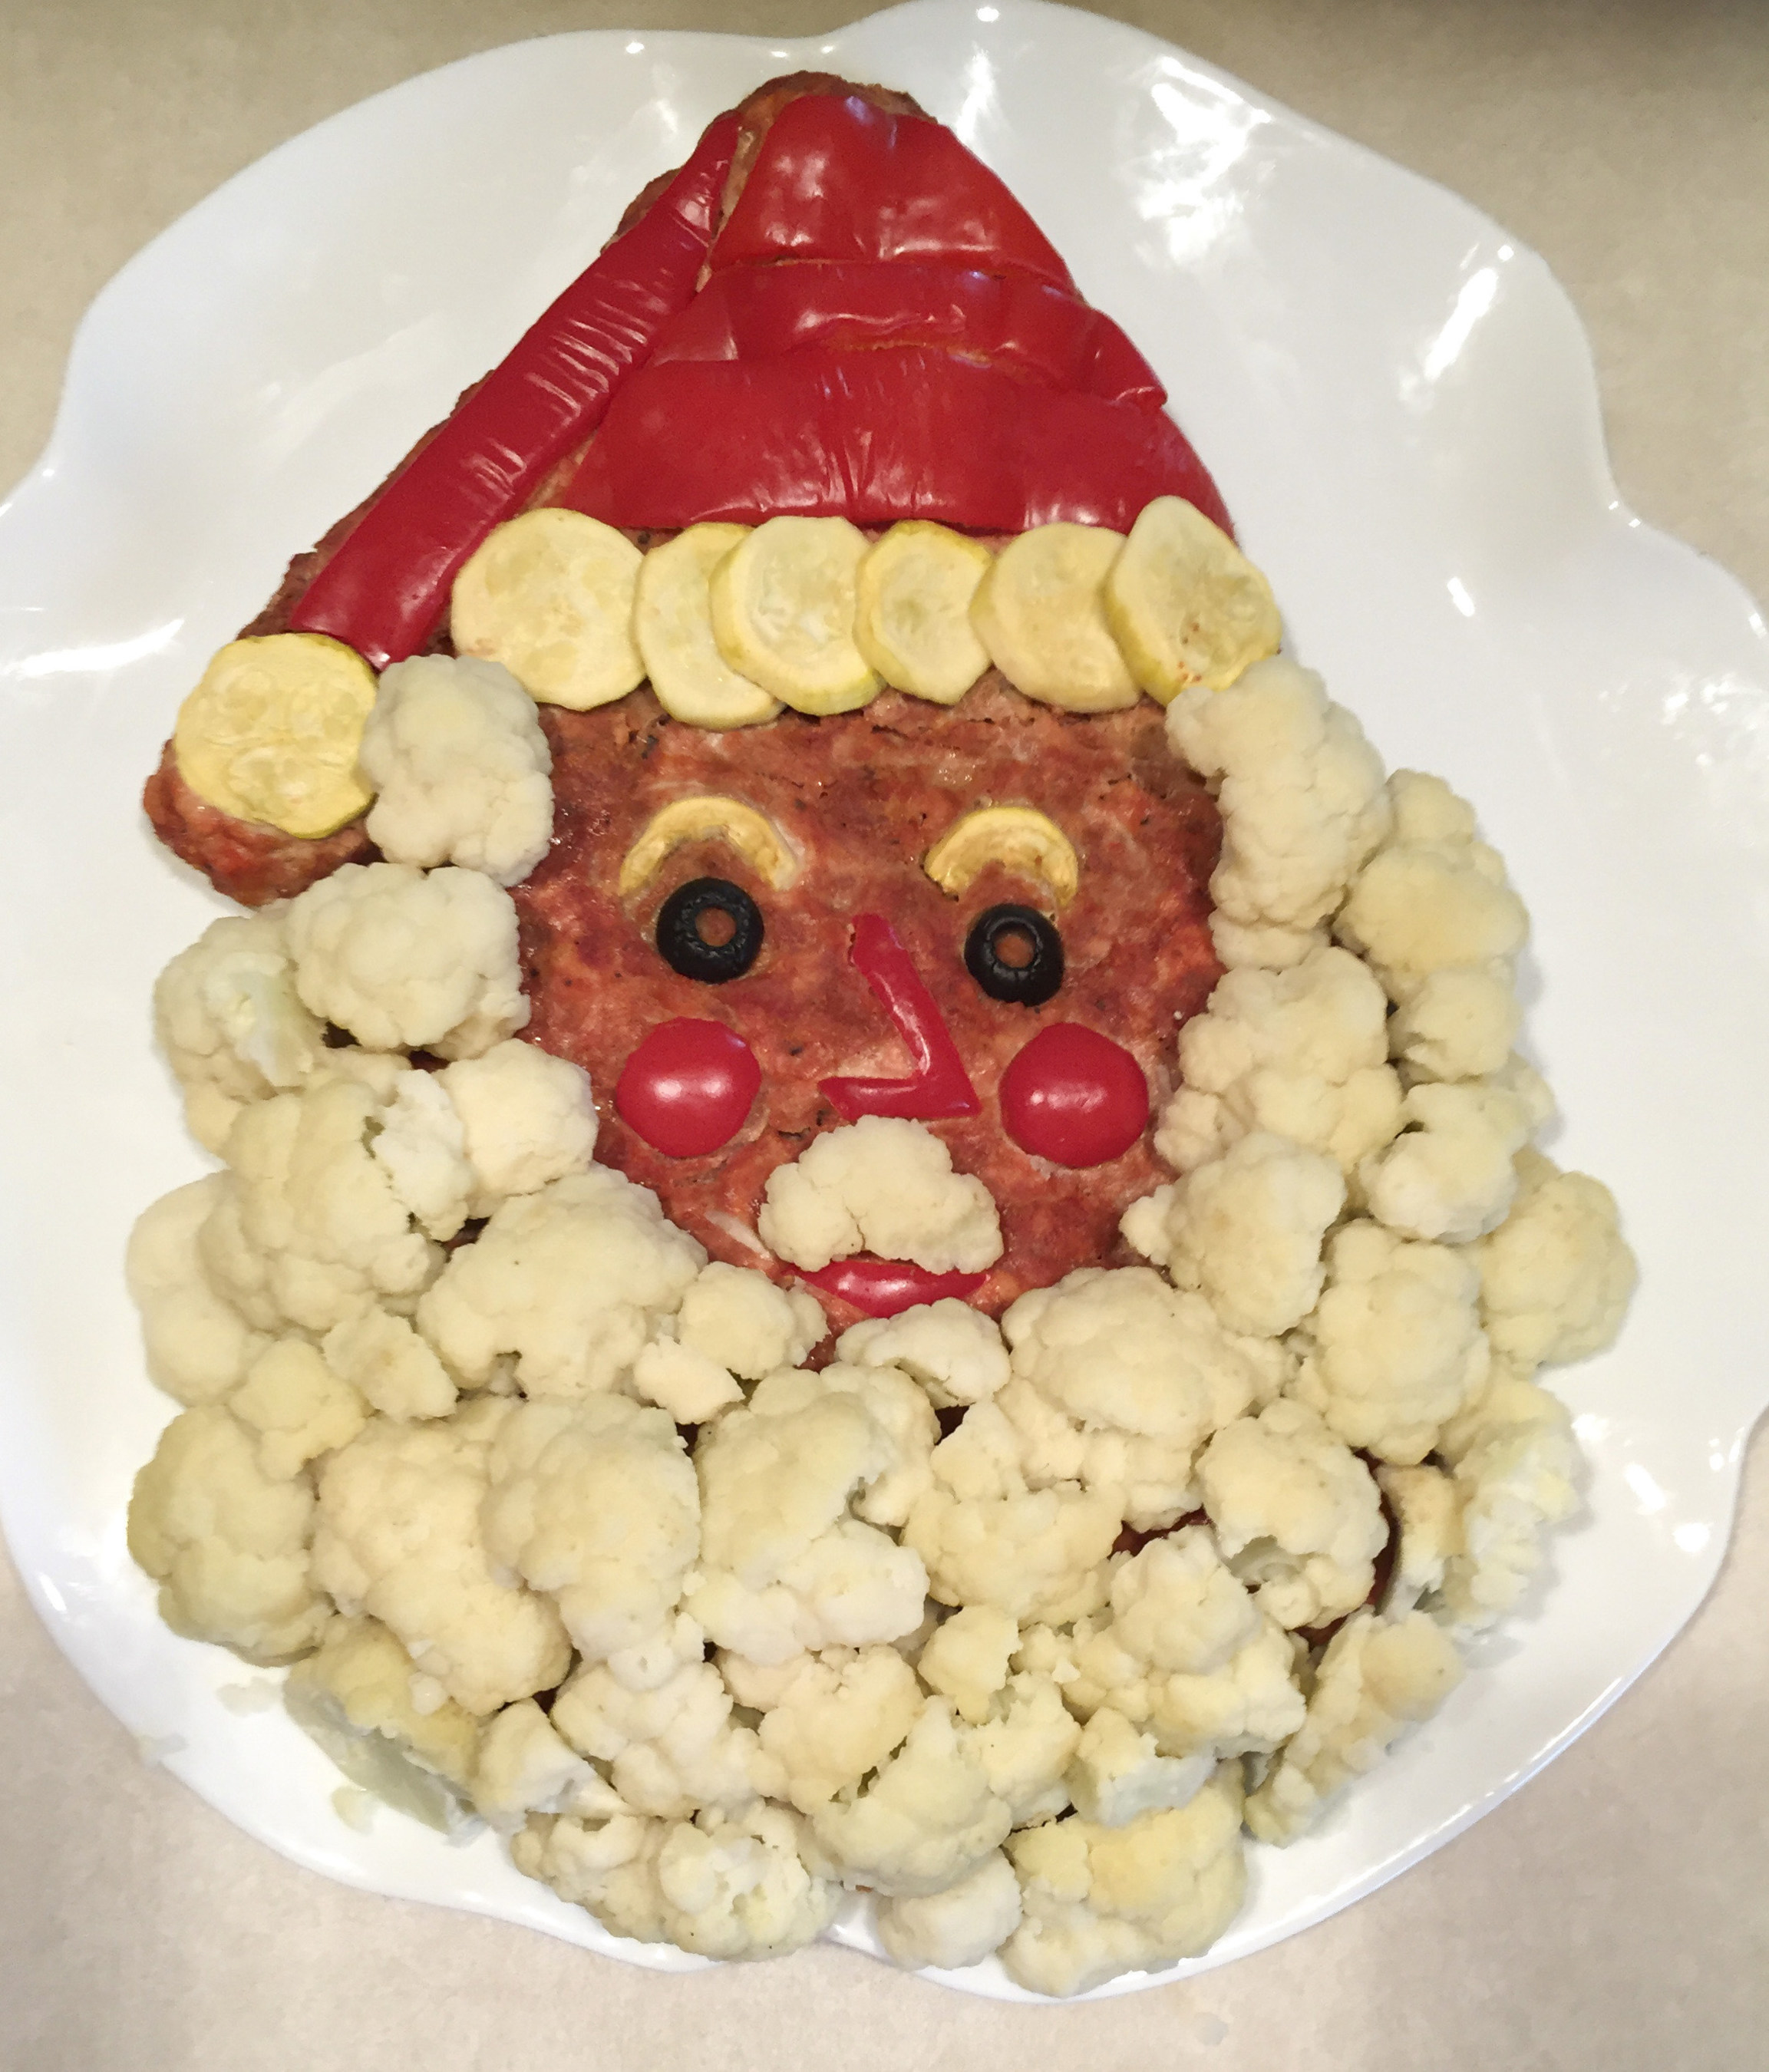 """This Santa is one example of how creative meatloaf can liven up the dinner table, according to Carol Falkowski, author of """"Meatloaf Outside the Pan."""""""